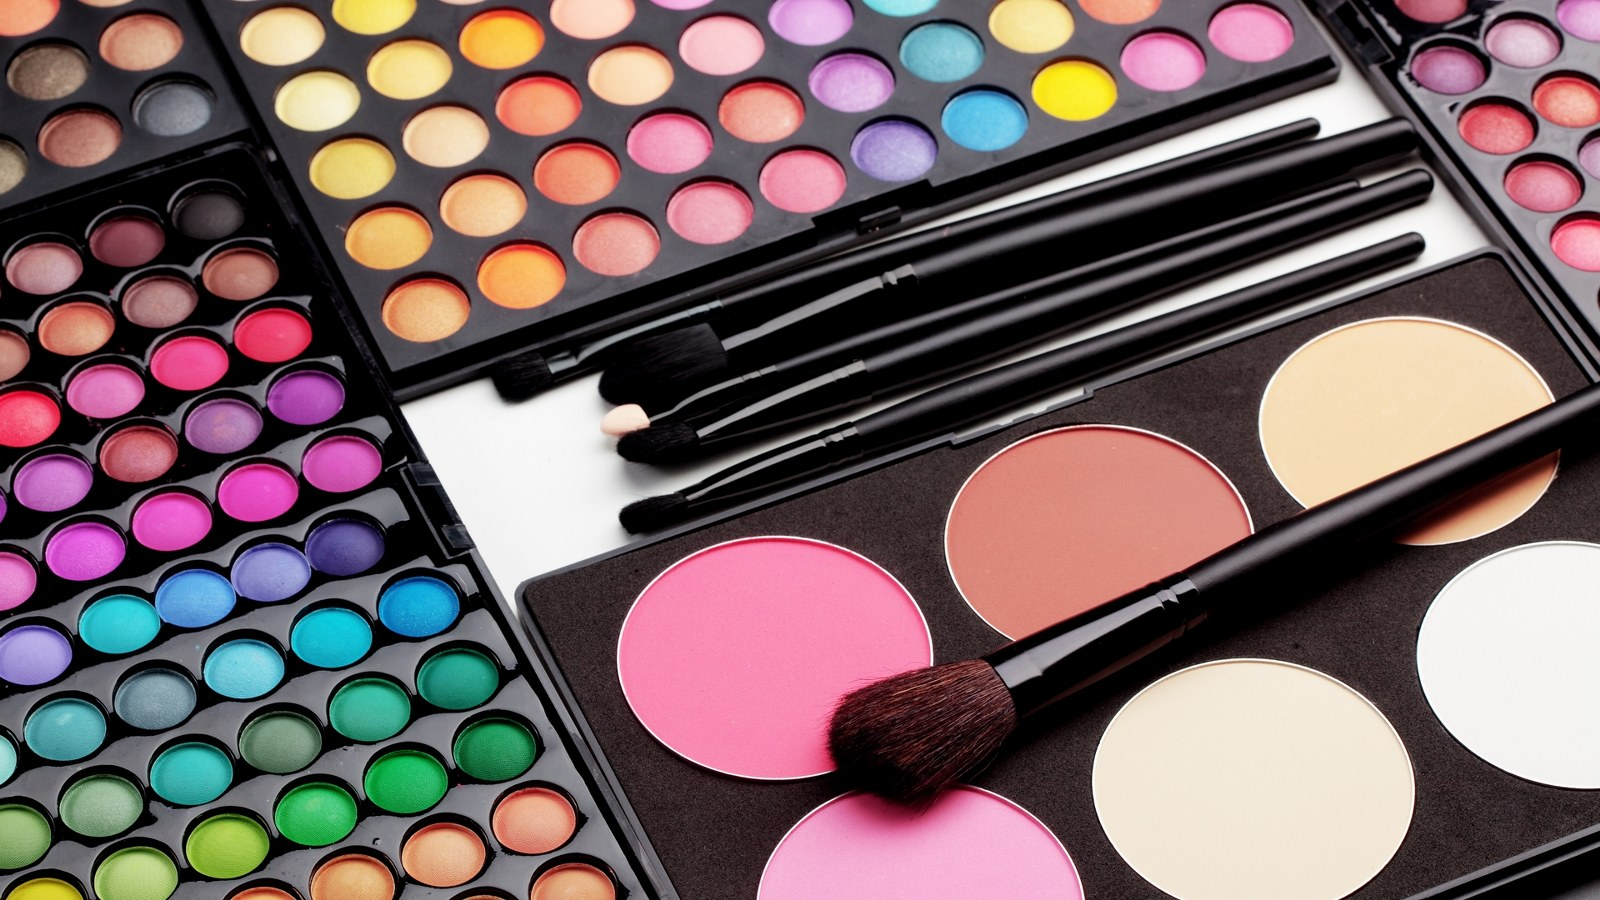 Background image for MAC Lover, the loyalty program of MAC Cosmetics.